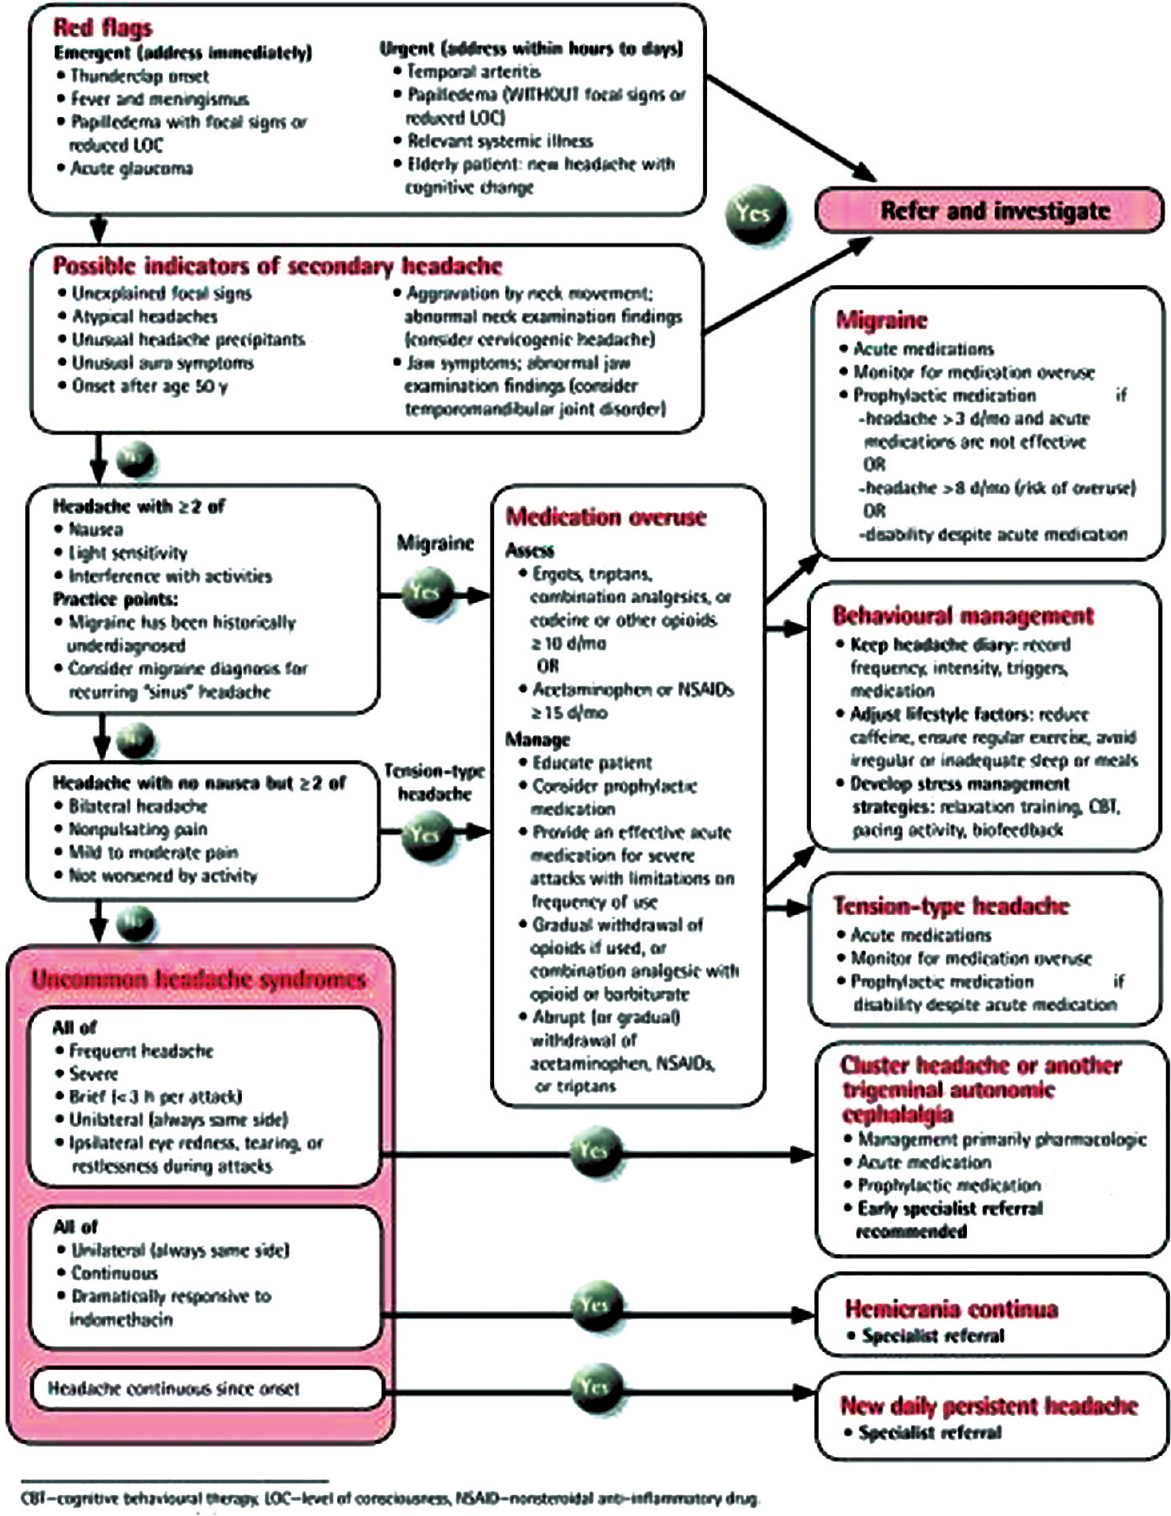 Figure 1: Quick reference algorithm from the Guideline for Primary Care Management of Headache in Adults Source: Can Fam Physician. 2015 August